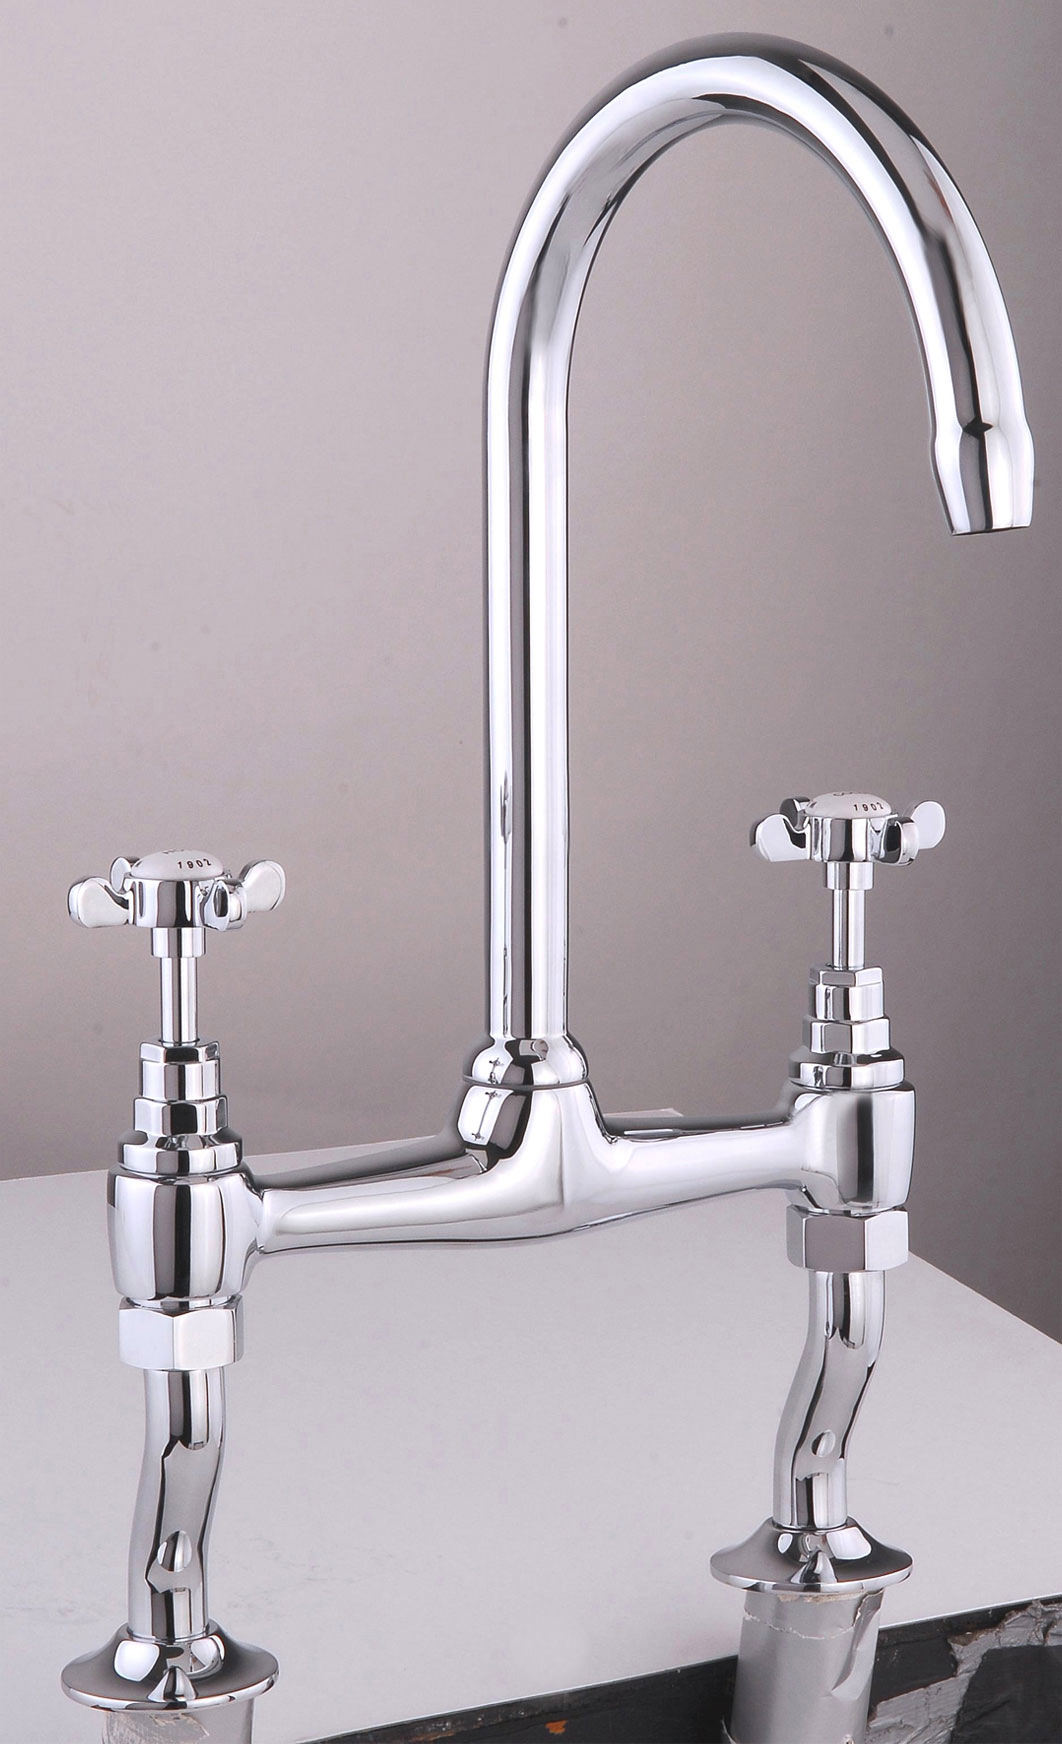 Mayfair Westminster Bridge Kitchen Sink Mixer Tap Chrome - More ...